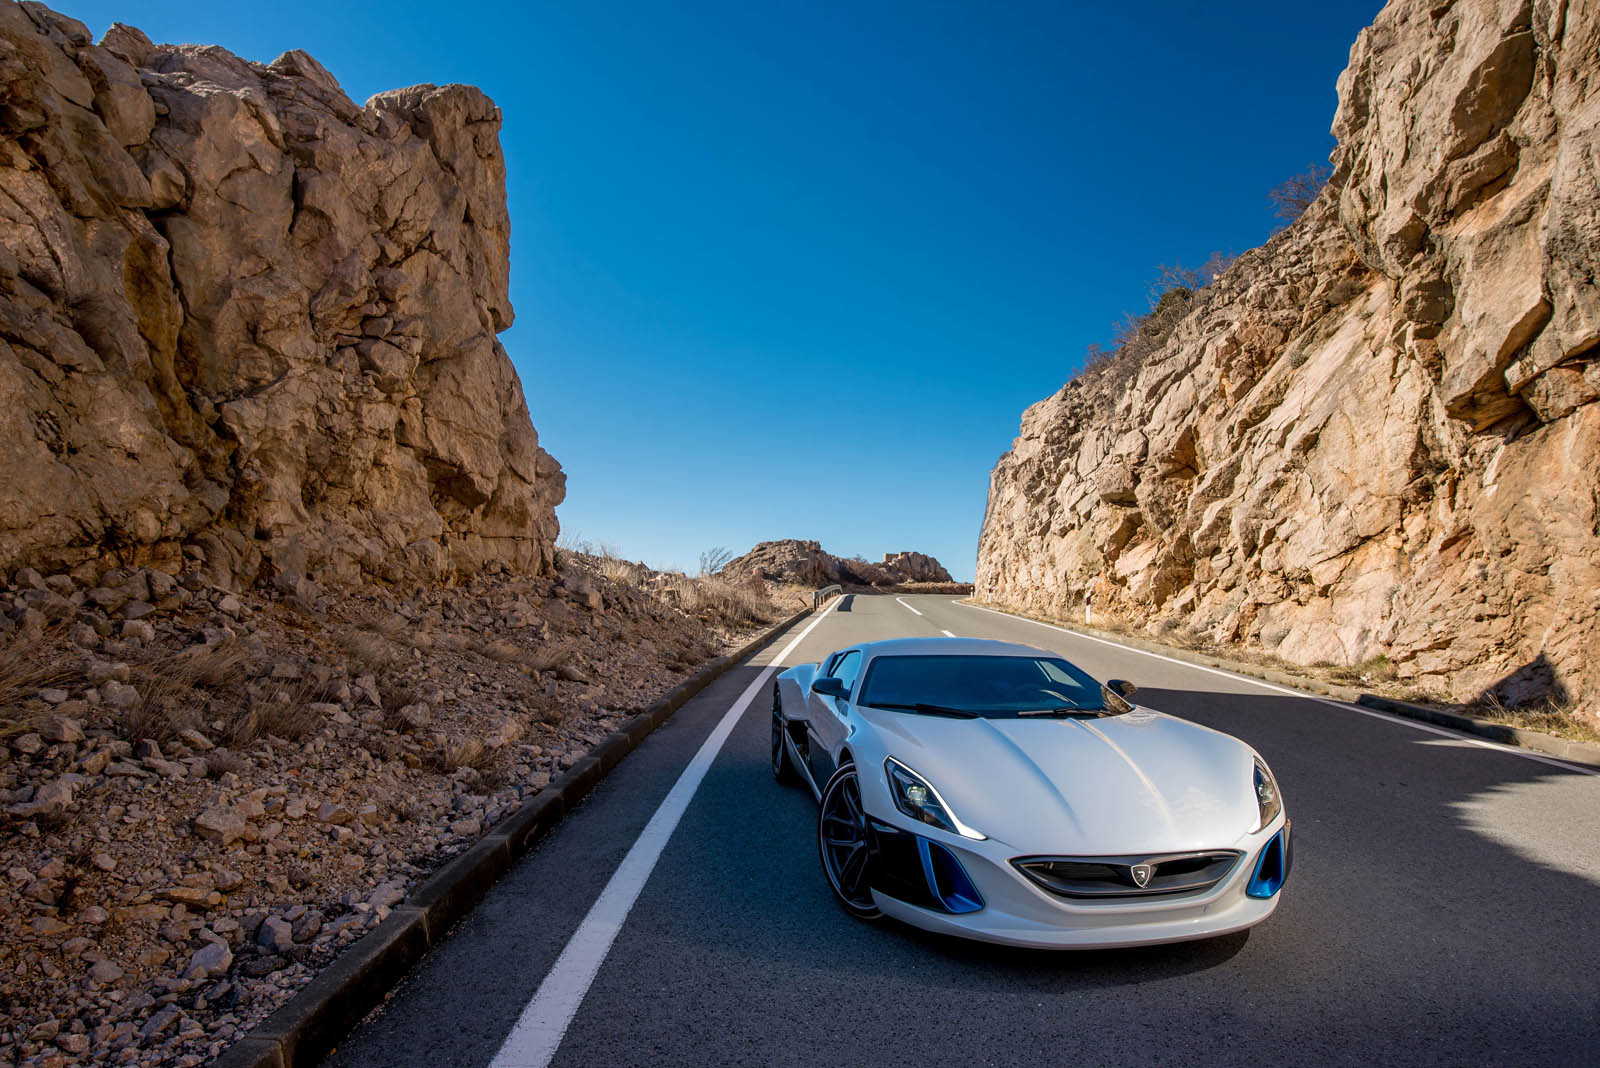 Rimac Concept_One in Geneva 2017 (33)